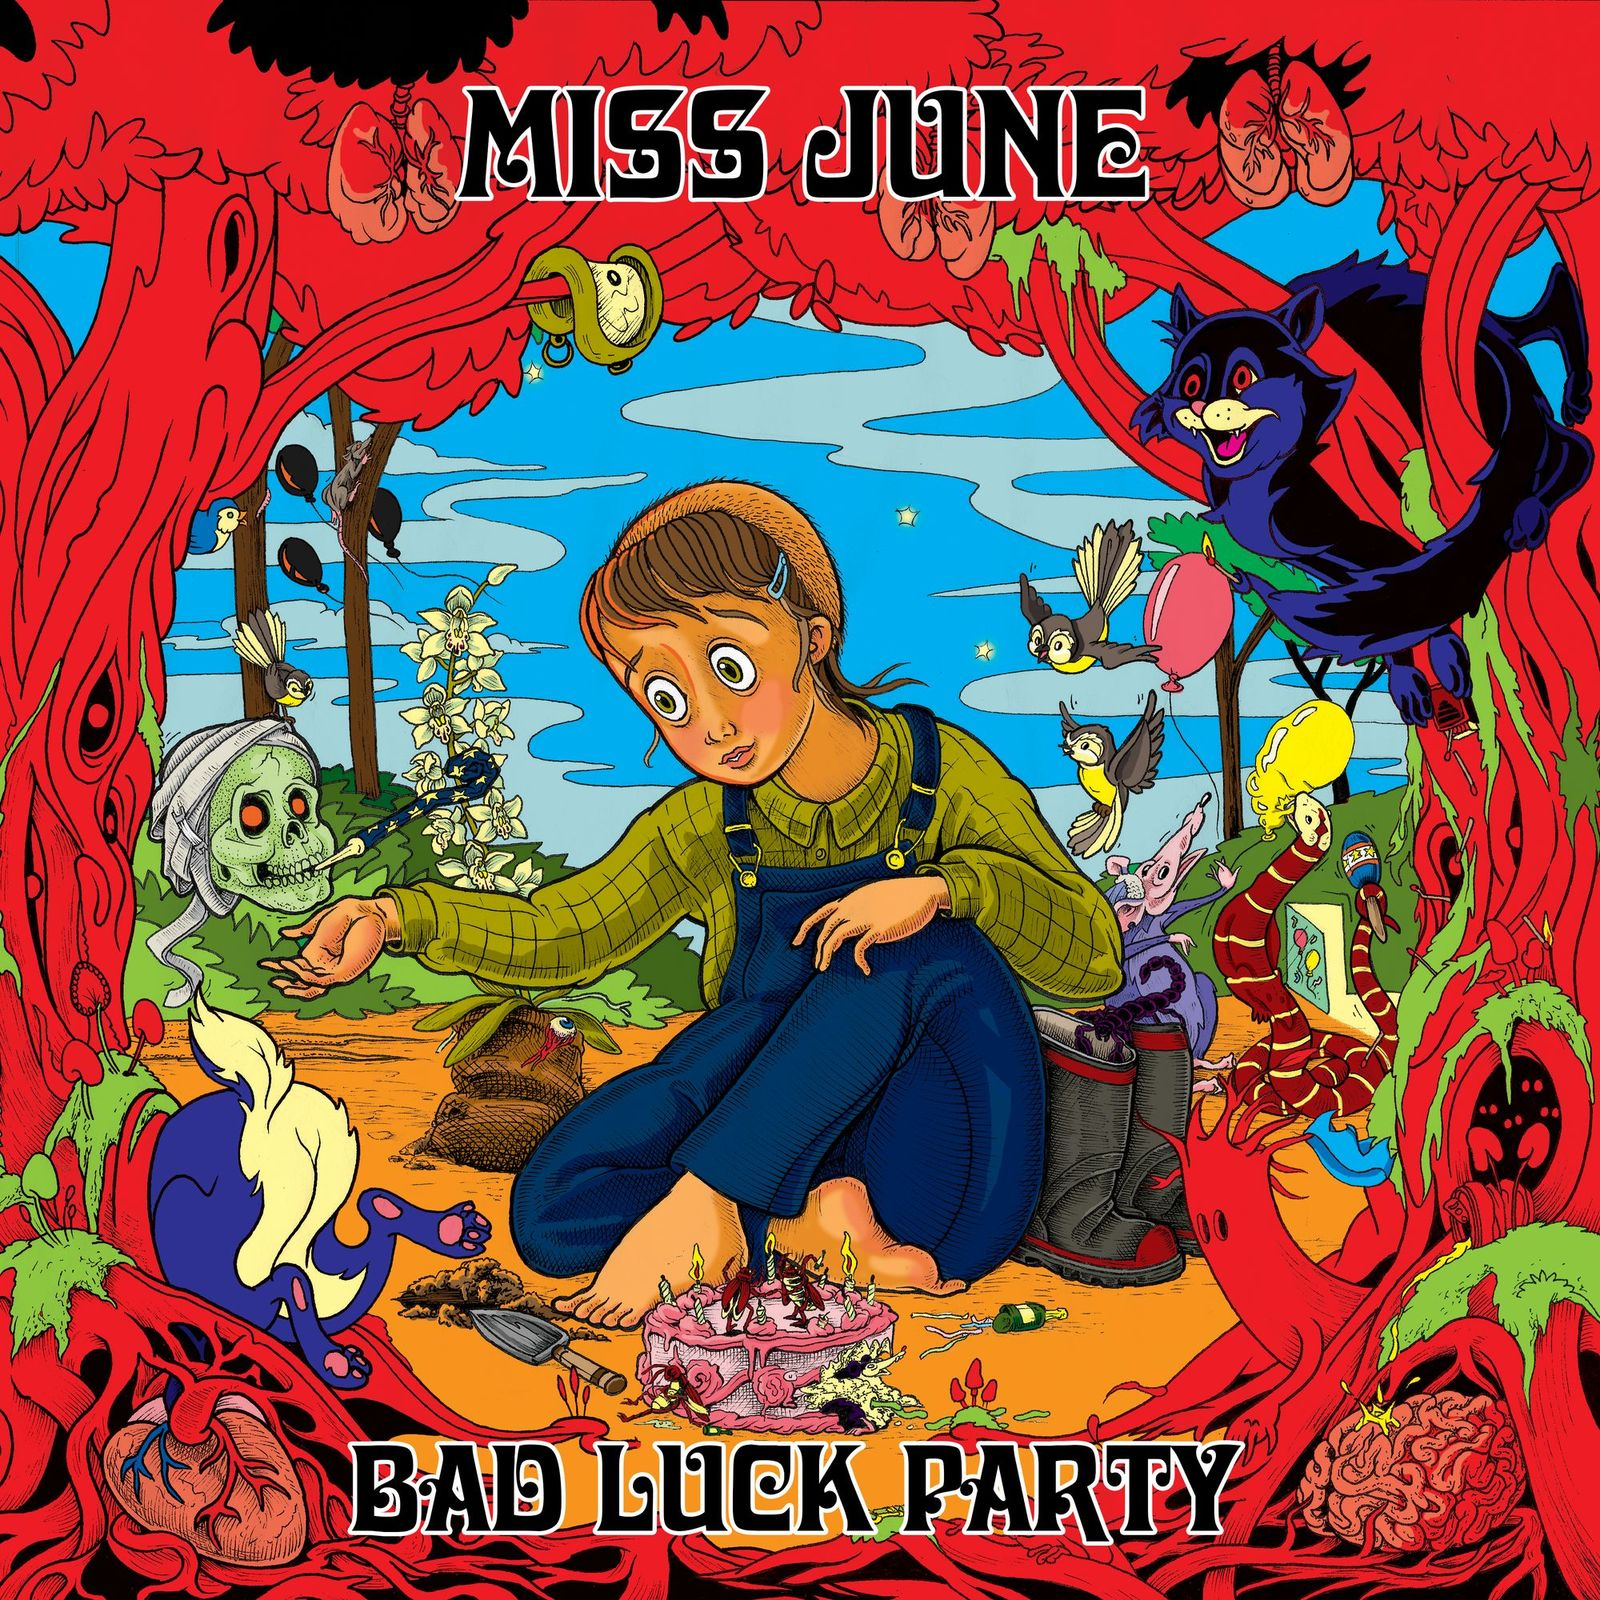 Bad Luck Party by Miss June image